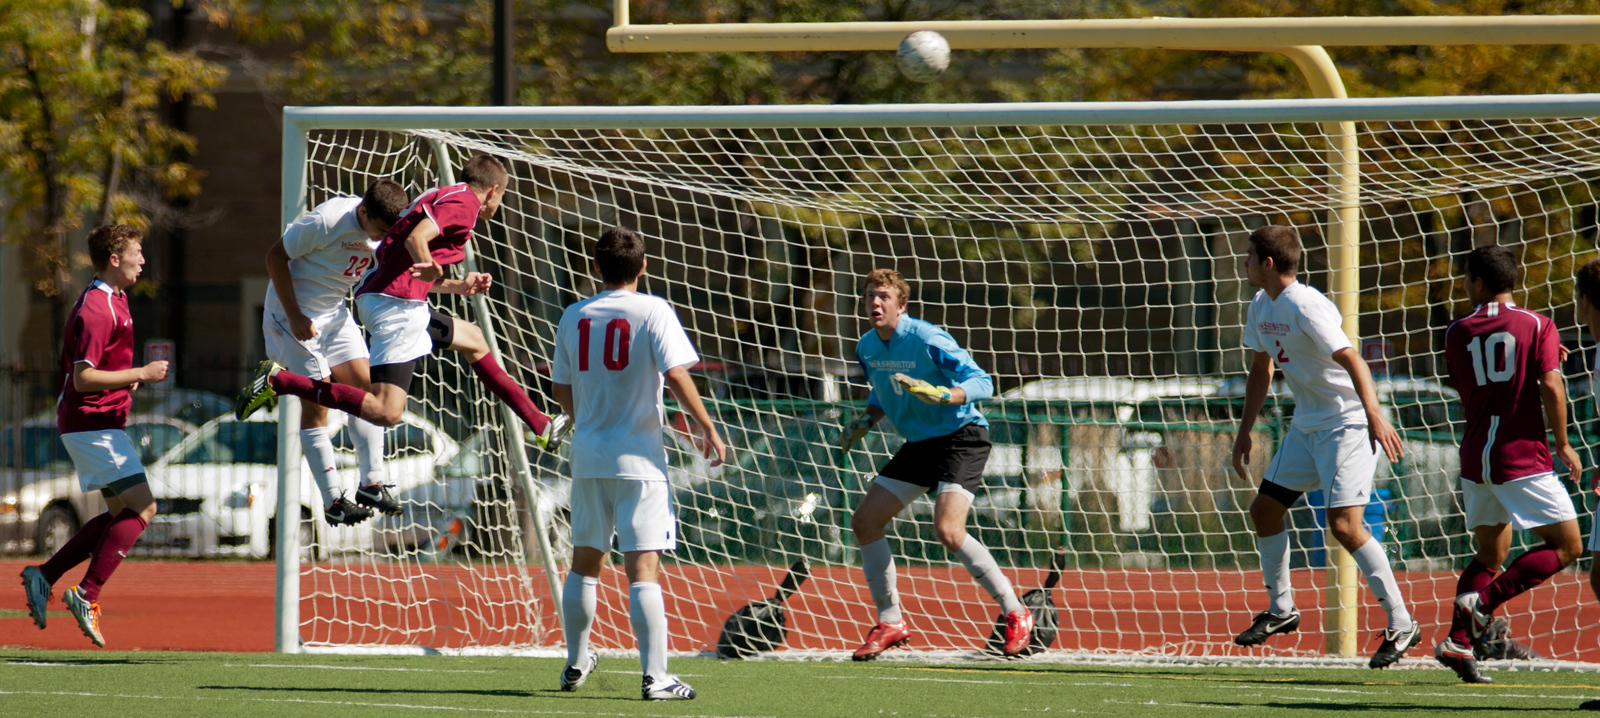 Washington University Men's Soccer vs. Carnegie Mellon University. Jonathon Jebson (0) in goal, Kenji Kobayashi (22), Pat McLean (10) & Brian Wright (2)